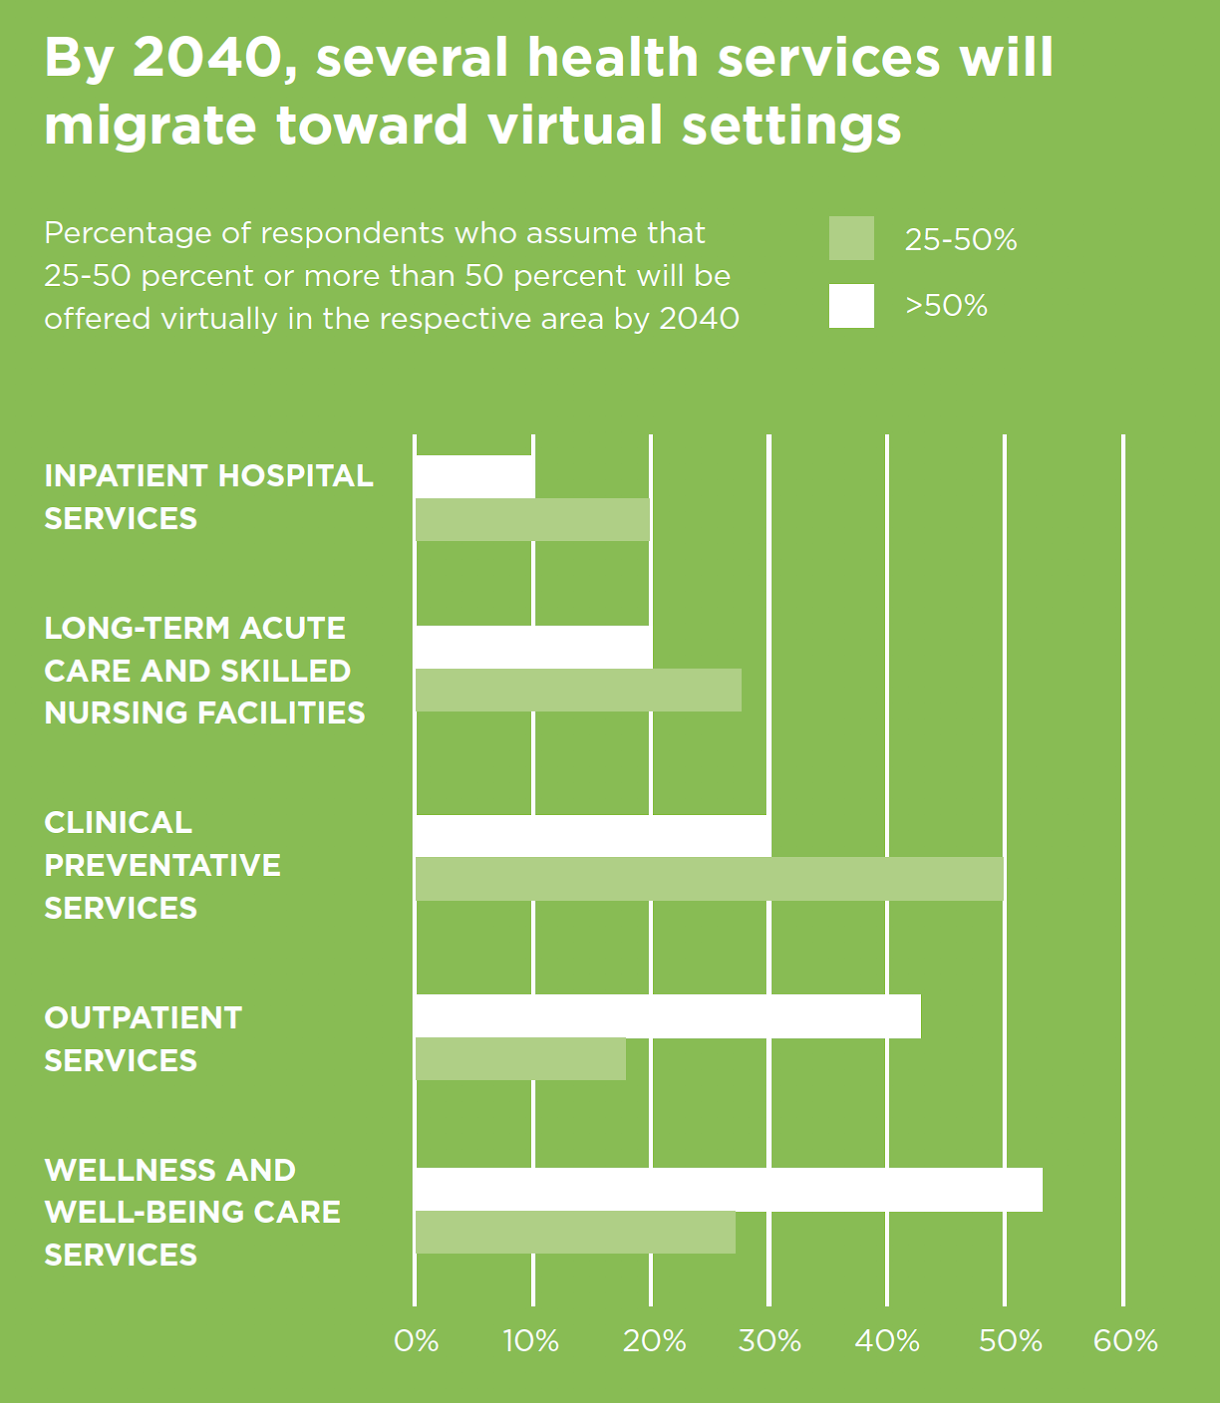 By 2040, several health services will migrate toward virtual settings Percentage of respondents who assume that 25-50% or more than 50% will be offered virtually in the respective area by 2040.